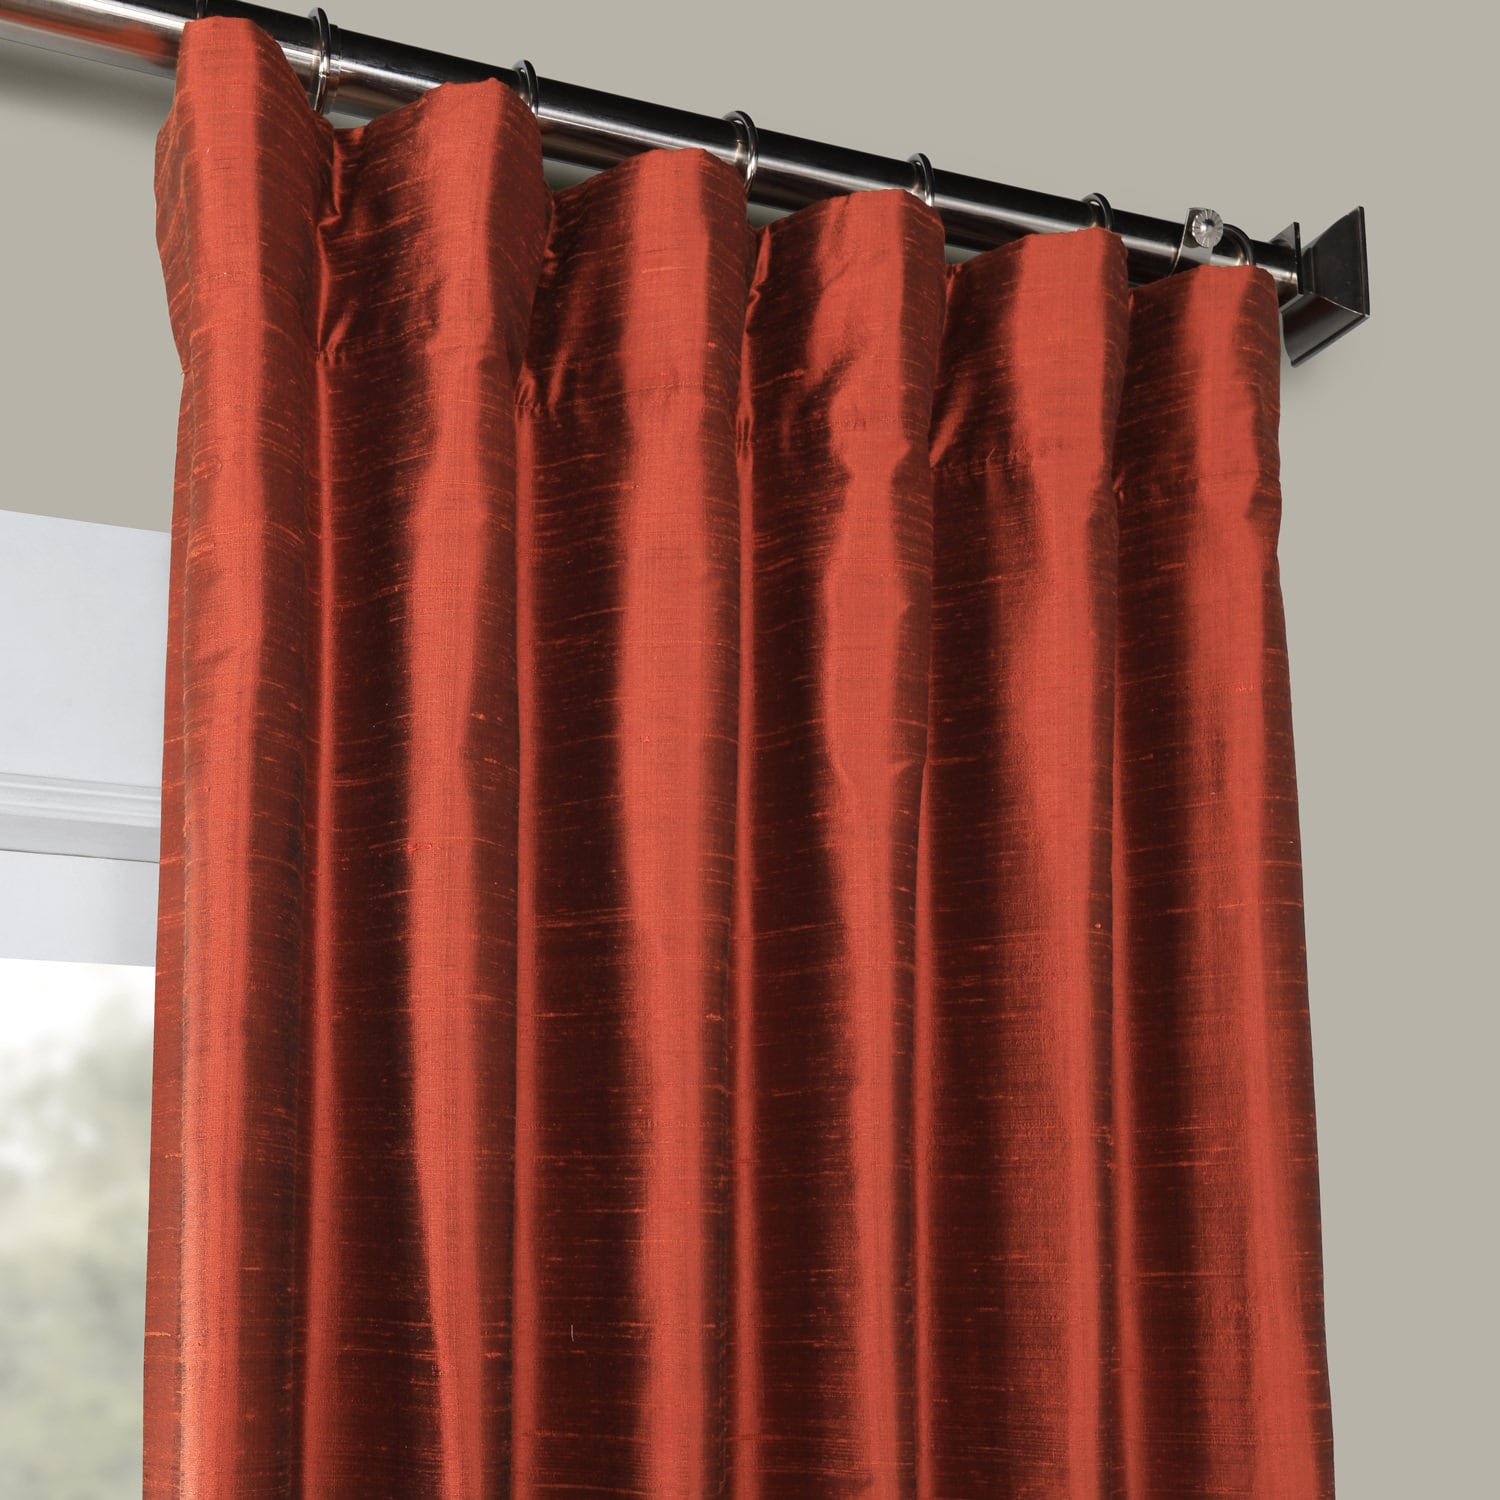 Cinnamon Stone Textured Dupioni Silk Curtain